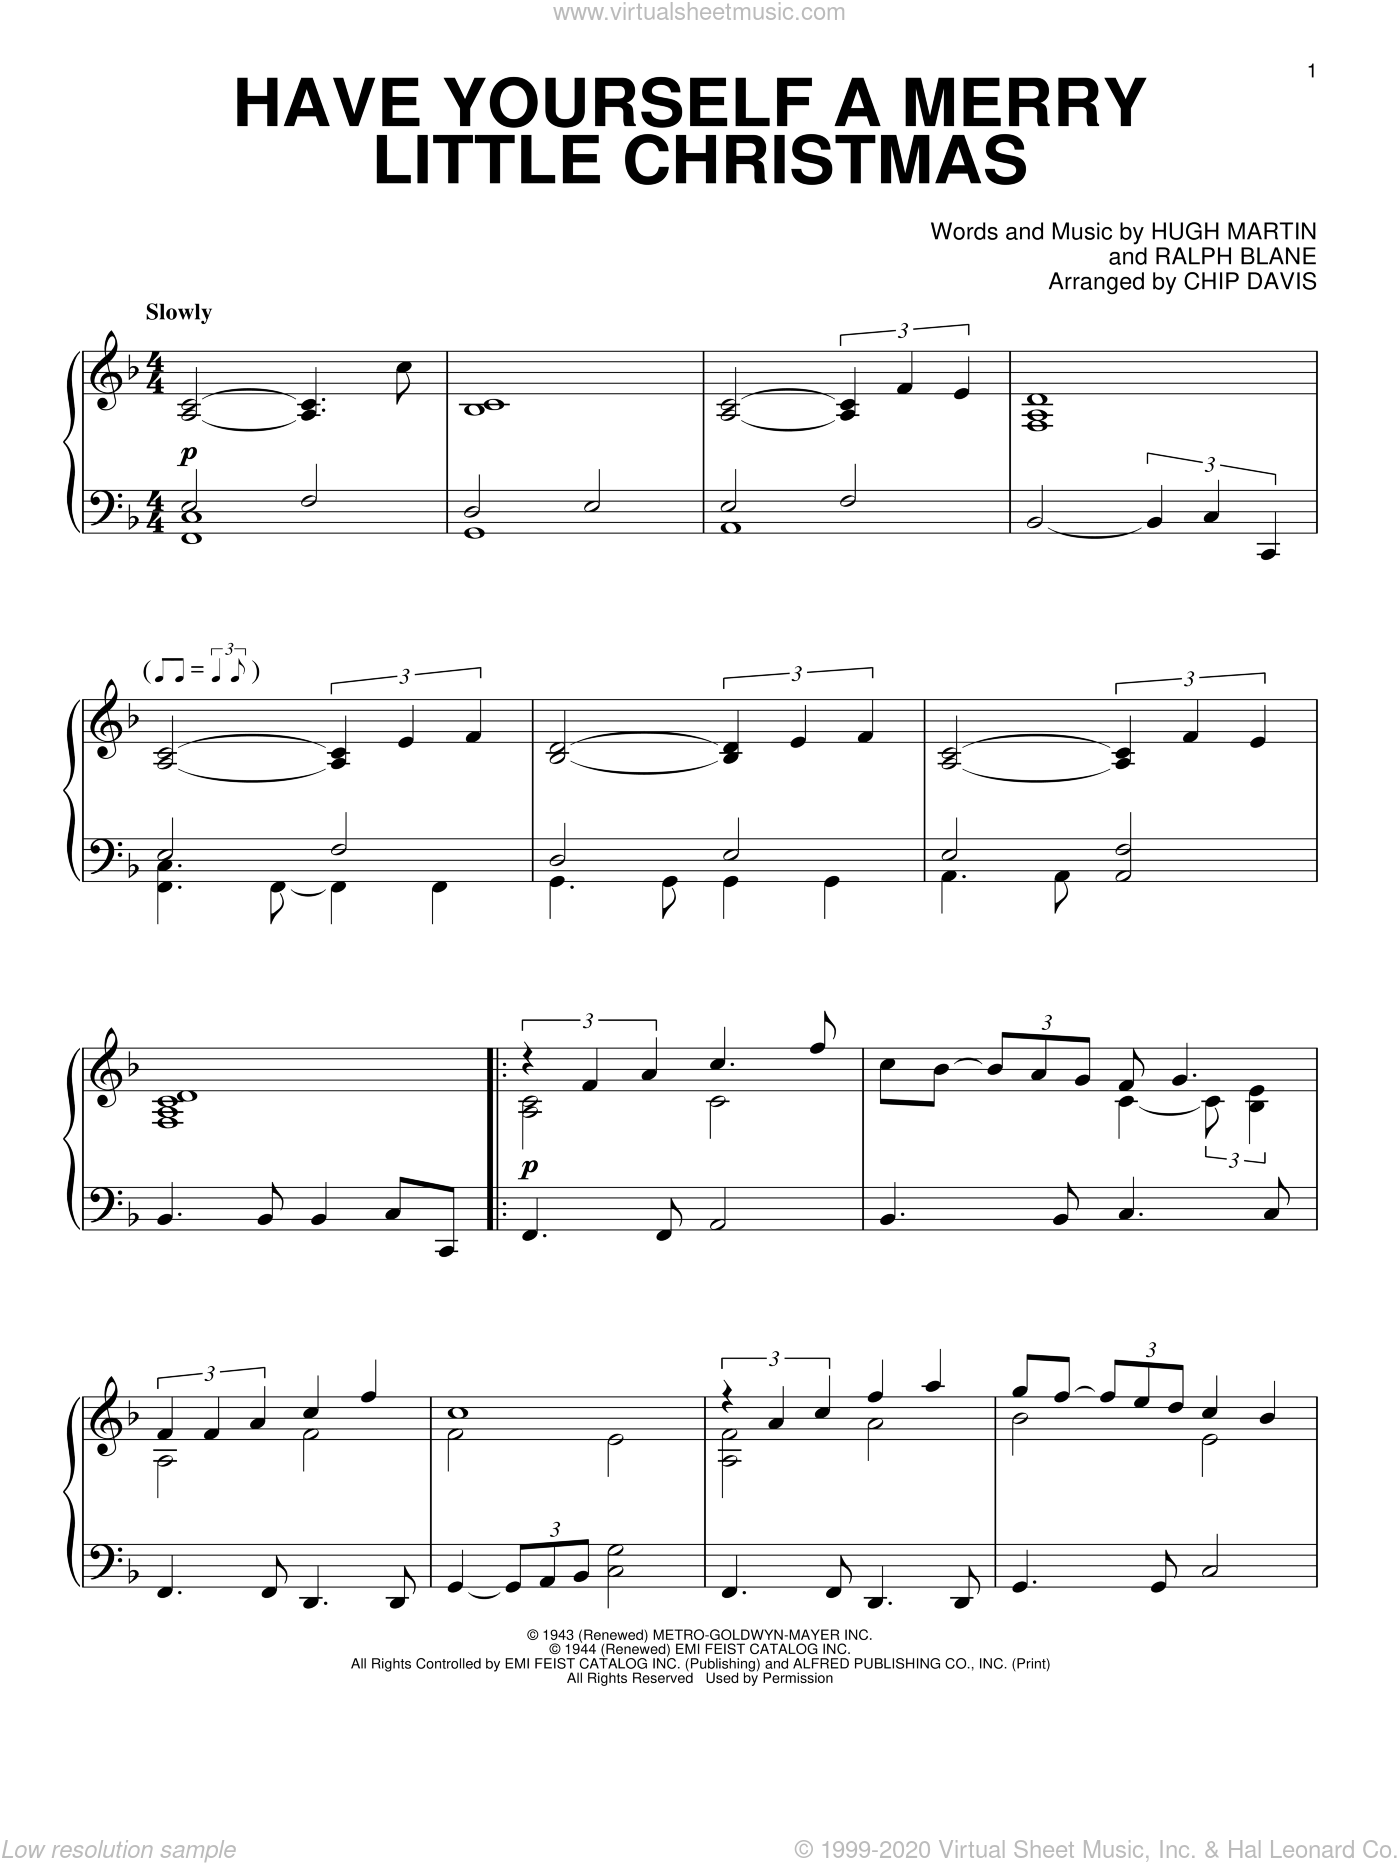 Steamroller - Have Yourself A Merry Little Christmas sheet music for piano solo